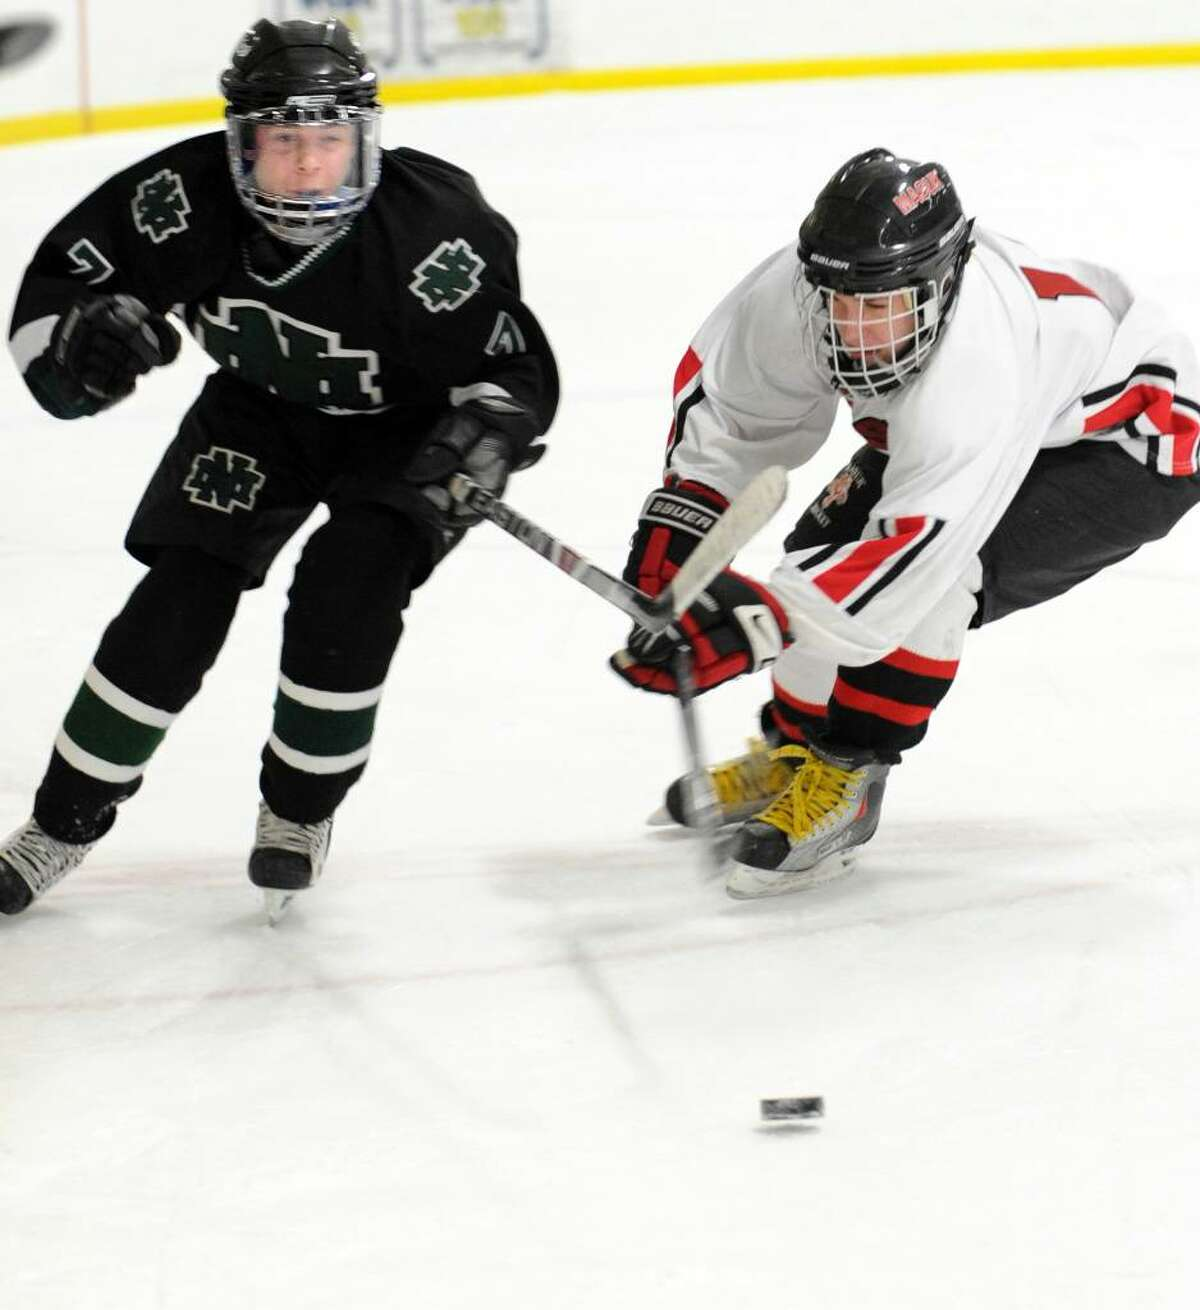 New Milford's Matt Dieter and Masuk's Tyler Dushay mix it up on the ice during the first period of Wednesday night's game at The Rinks at Shelton.